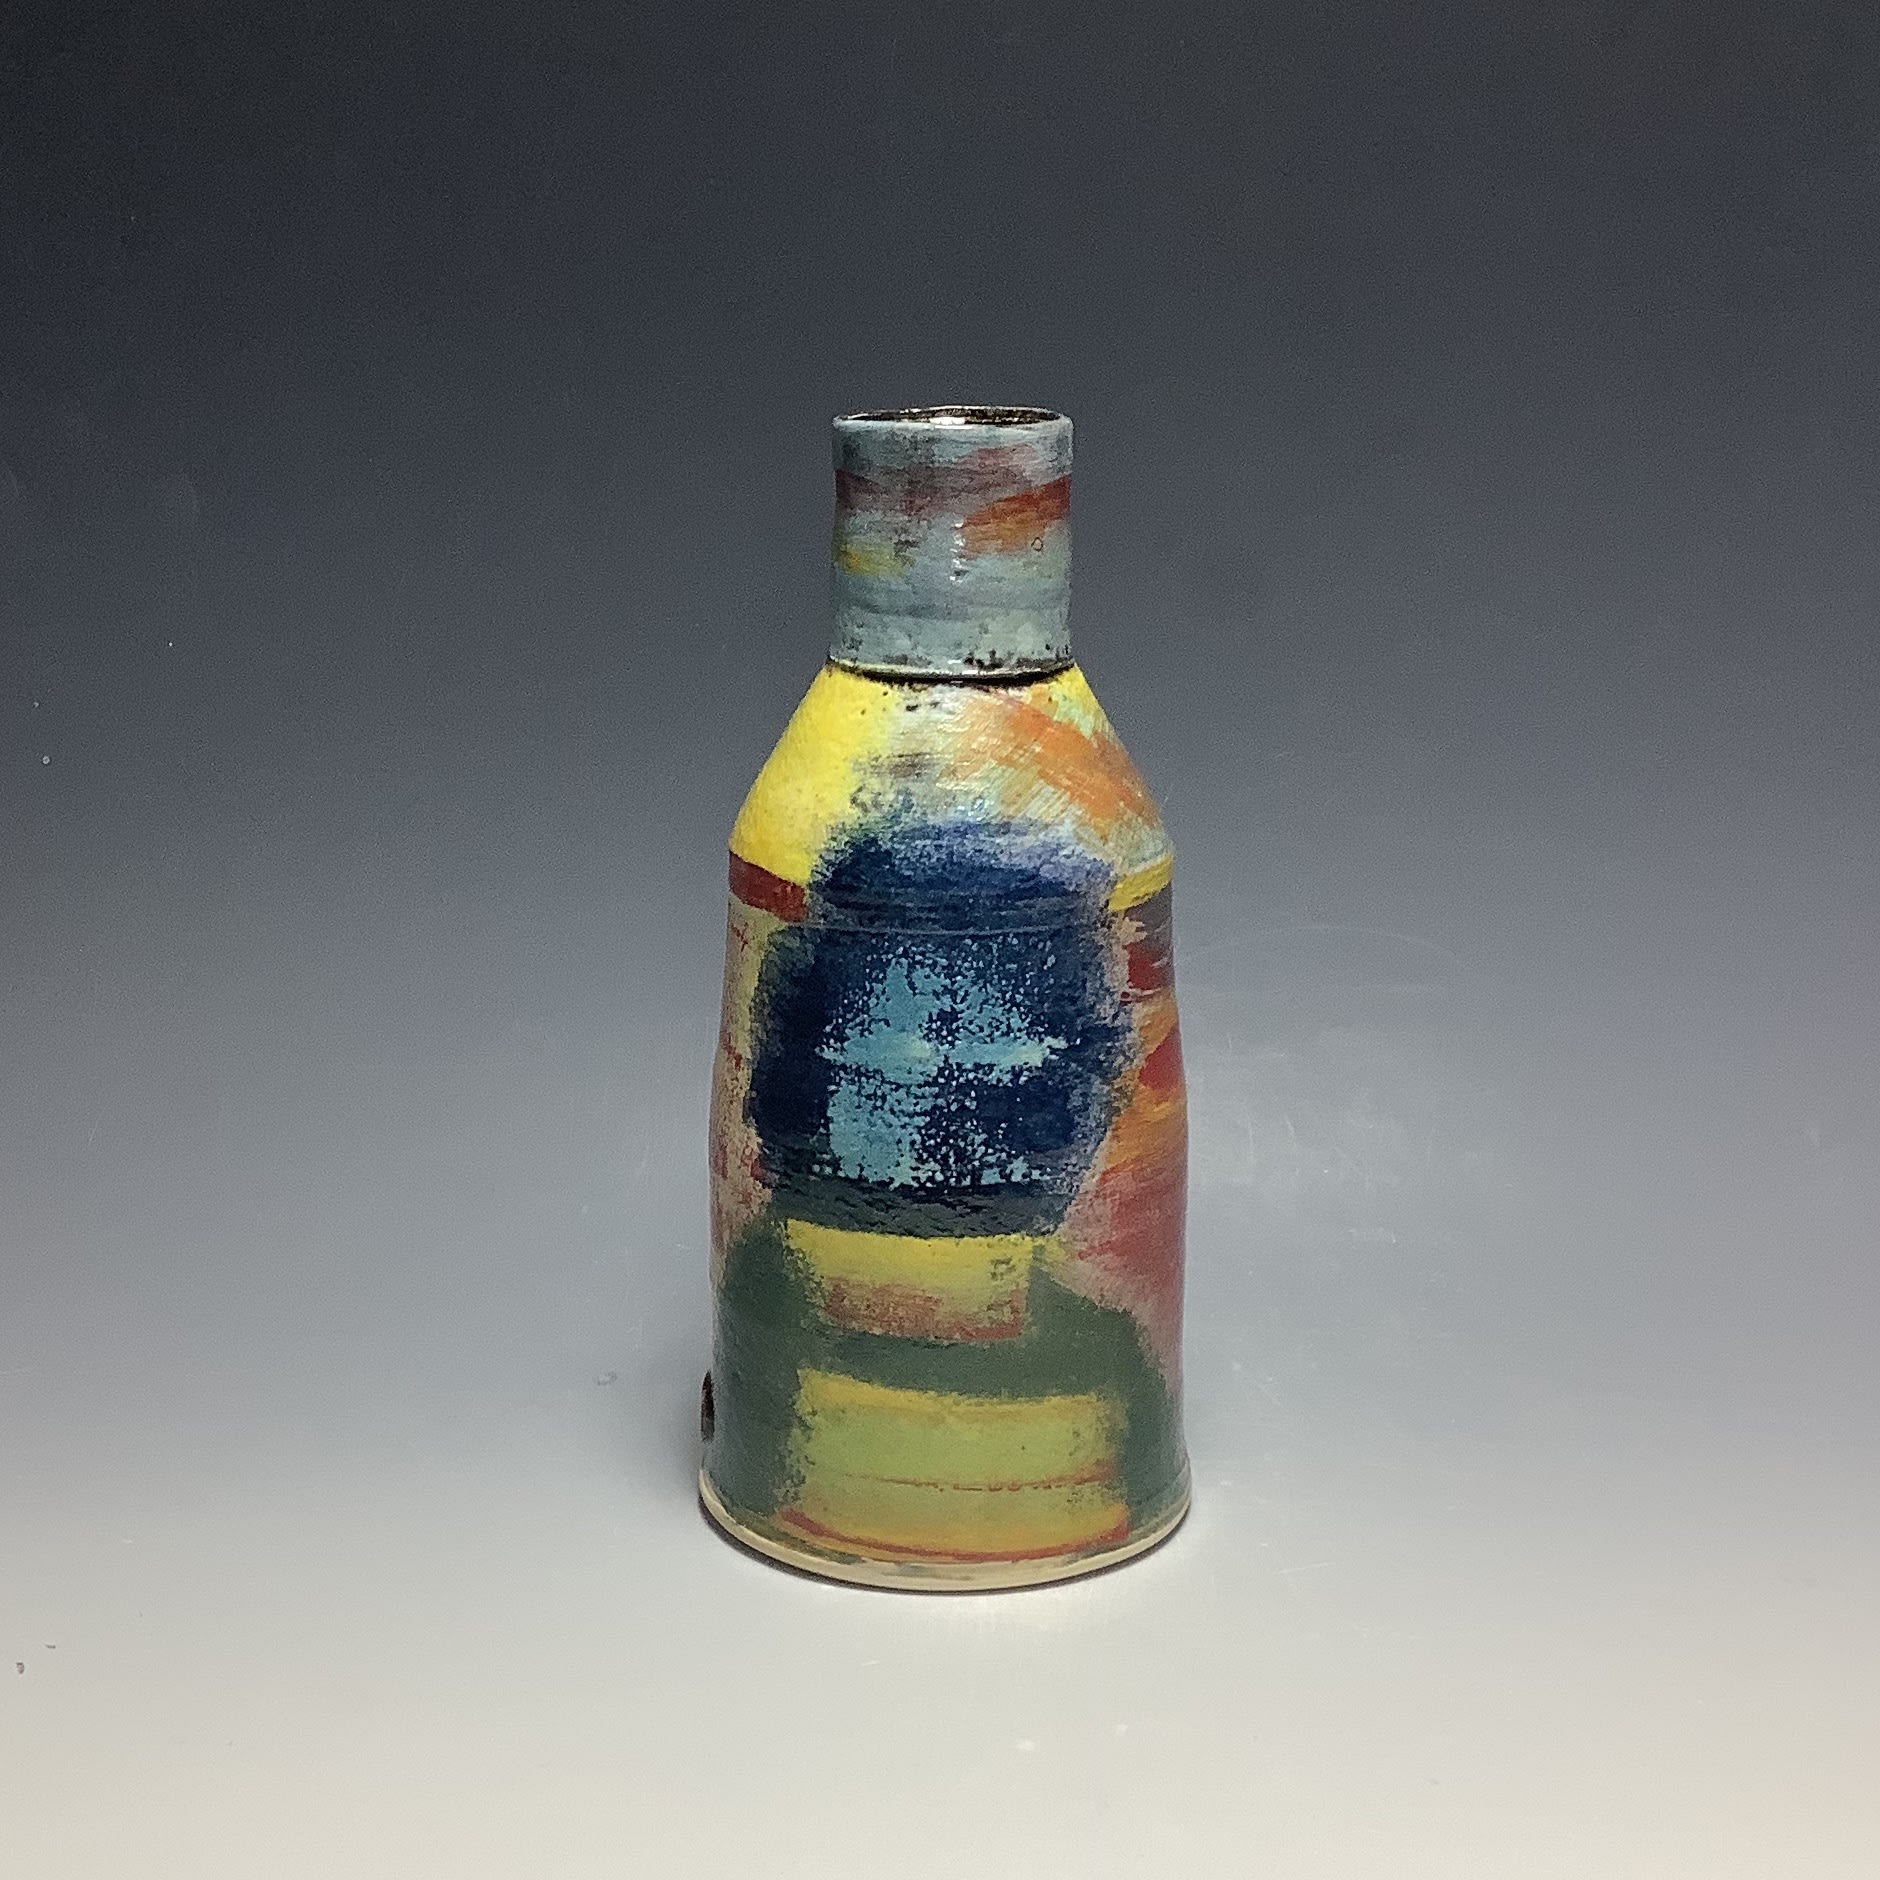 """<span class=""""link fancybox-details-link""""><a href=""""/artists/100-john-pollex/works/6837-john-pollex-small-bottle-2020/"""">View Detail Page</a></span><div class=""""artist""""><strong>John Pollex</strong></div> b. 1941 <div class=""""title""""><em>Small Bottle</em>, 2020</div> <div class=""""signed_and_dated"""">impressed with the artist's seal mark 'JP'</div> <div class=""""medium"""">white earthenware decorated with coloured slips</div> <div class=""""dimensions"""">h. 7.5 in</div><div class=""""copyright_line"""">Ownart: £176 x 10 Months, 0% APR</div>"""